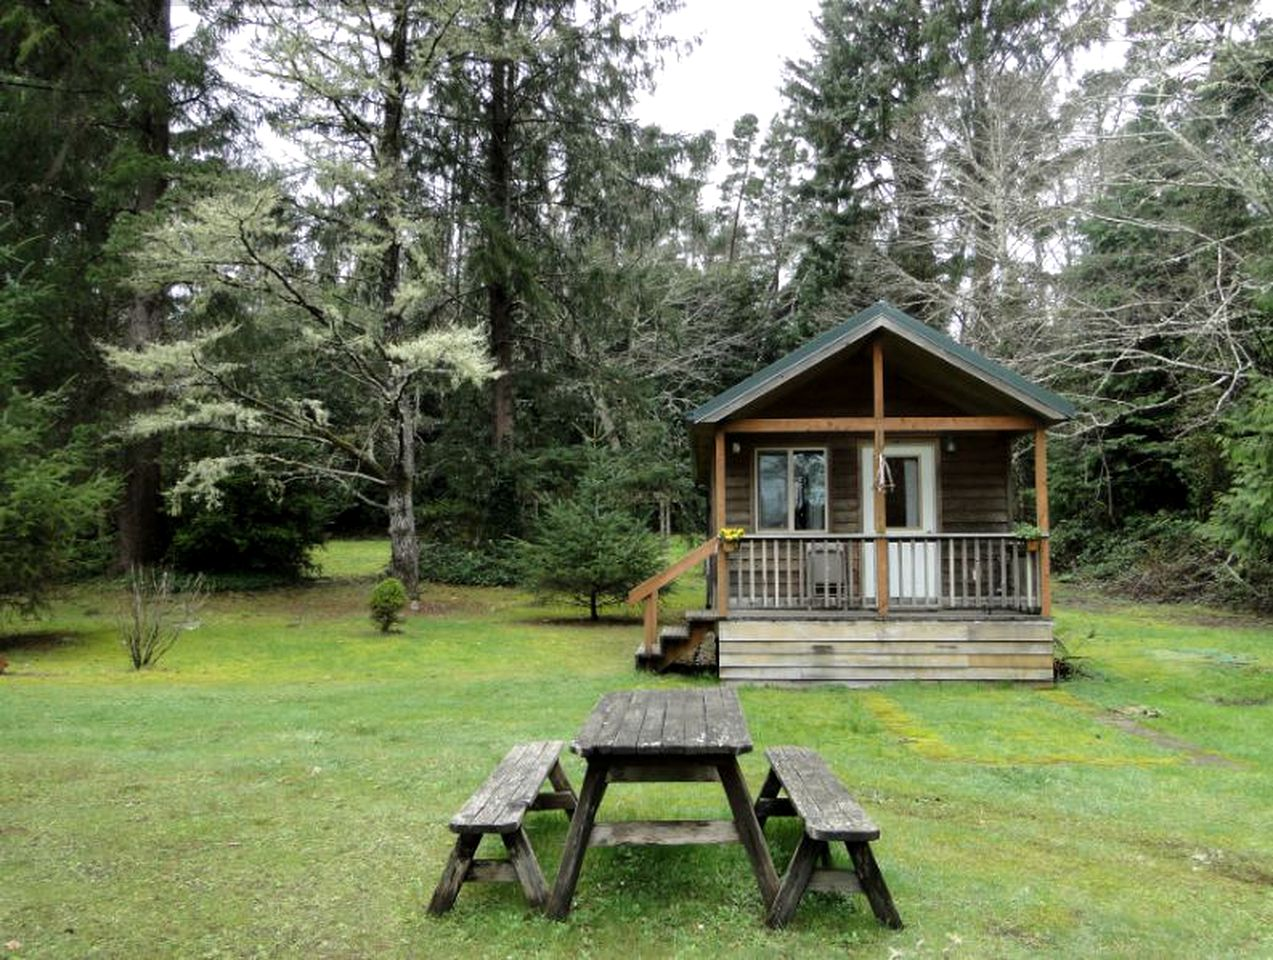 Cabins (Ocean Park, Washington, United States)